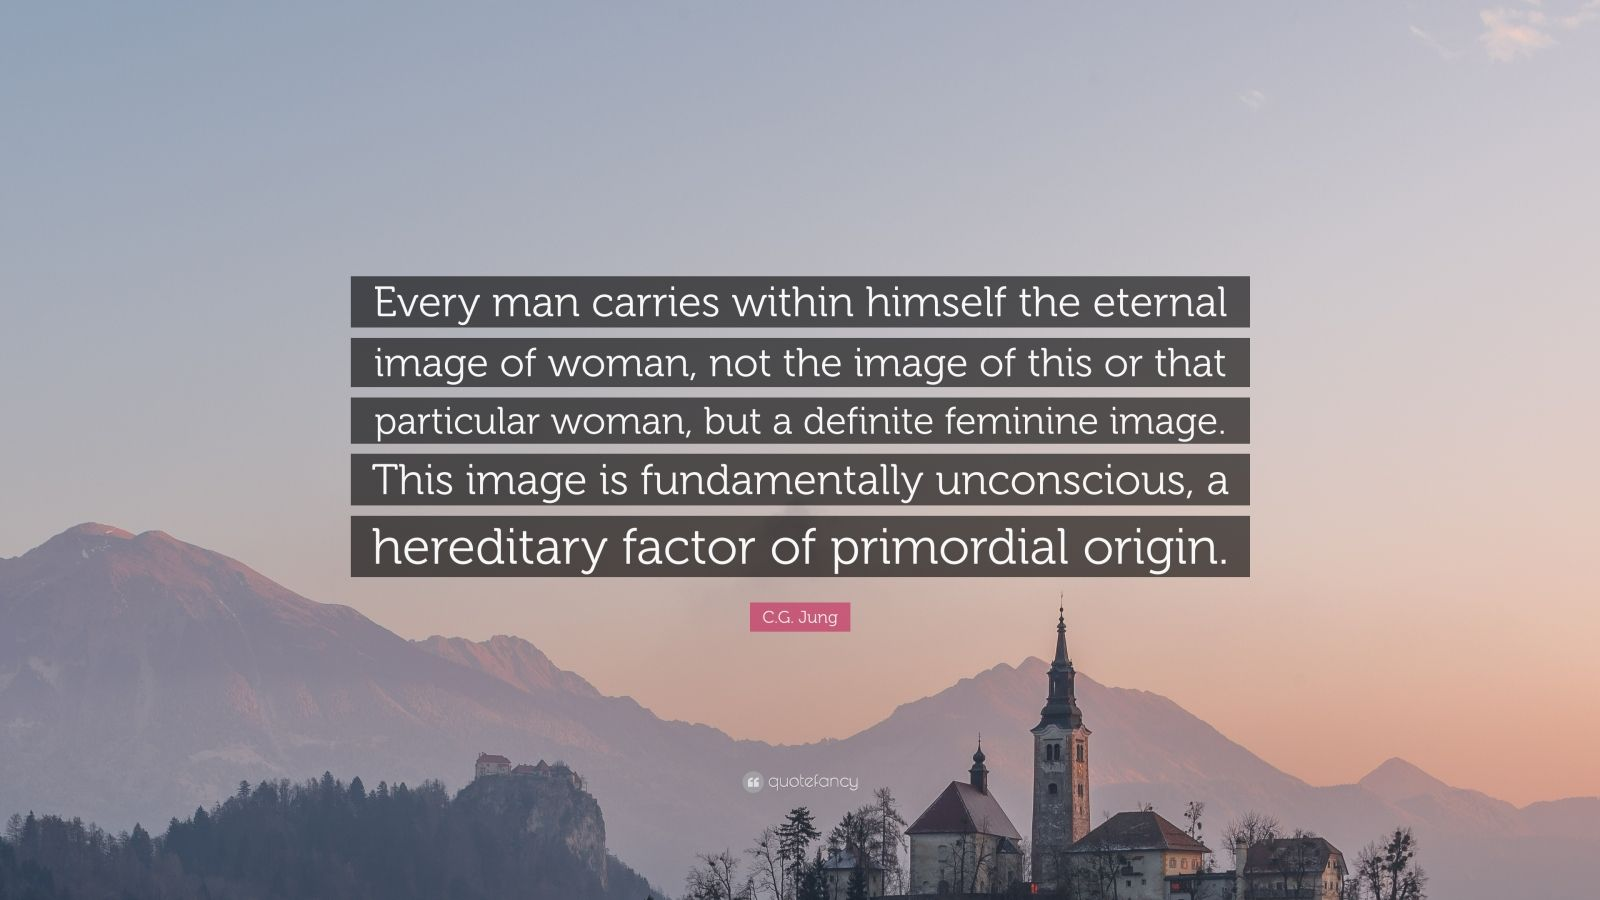 """C.G. Jung Quote: """"Every man carries within himself the eternal image of woman, not the image of this or that particular woman, but a definite feminine image. This image is fundamentally unconscious, a hereditary factor of primordial origin."""""""